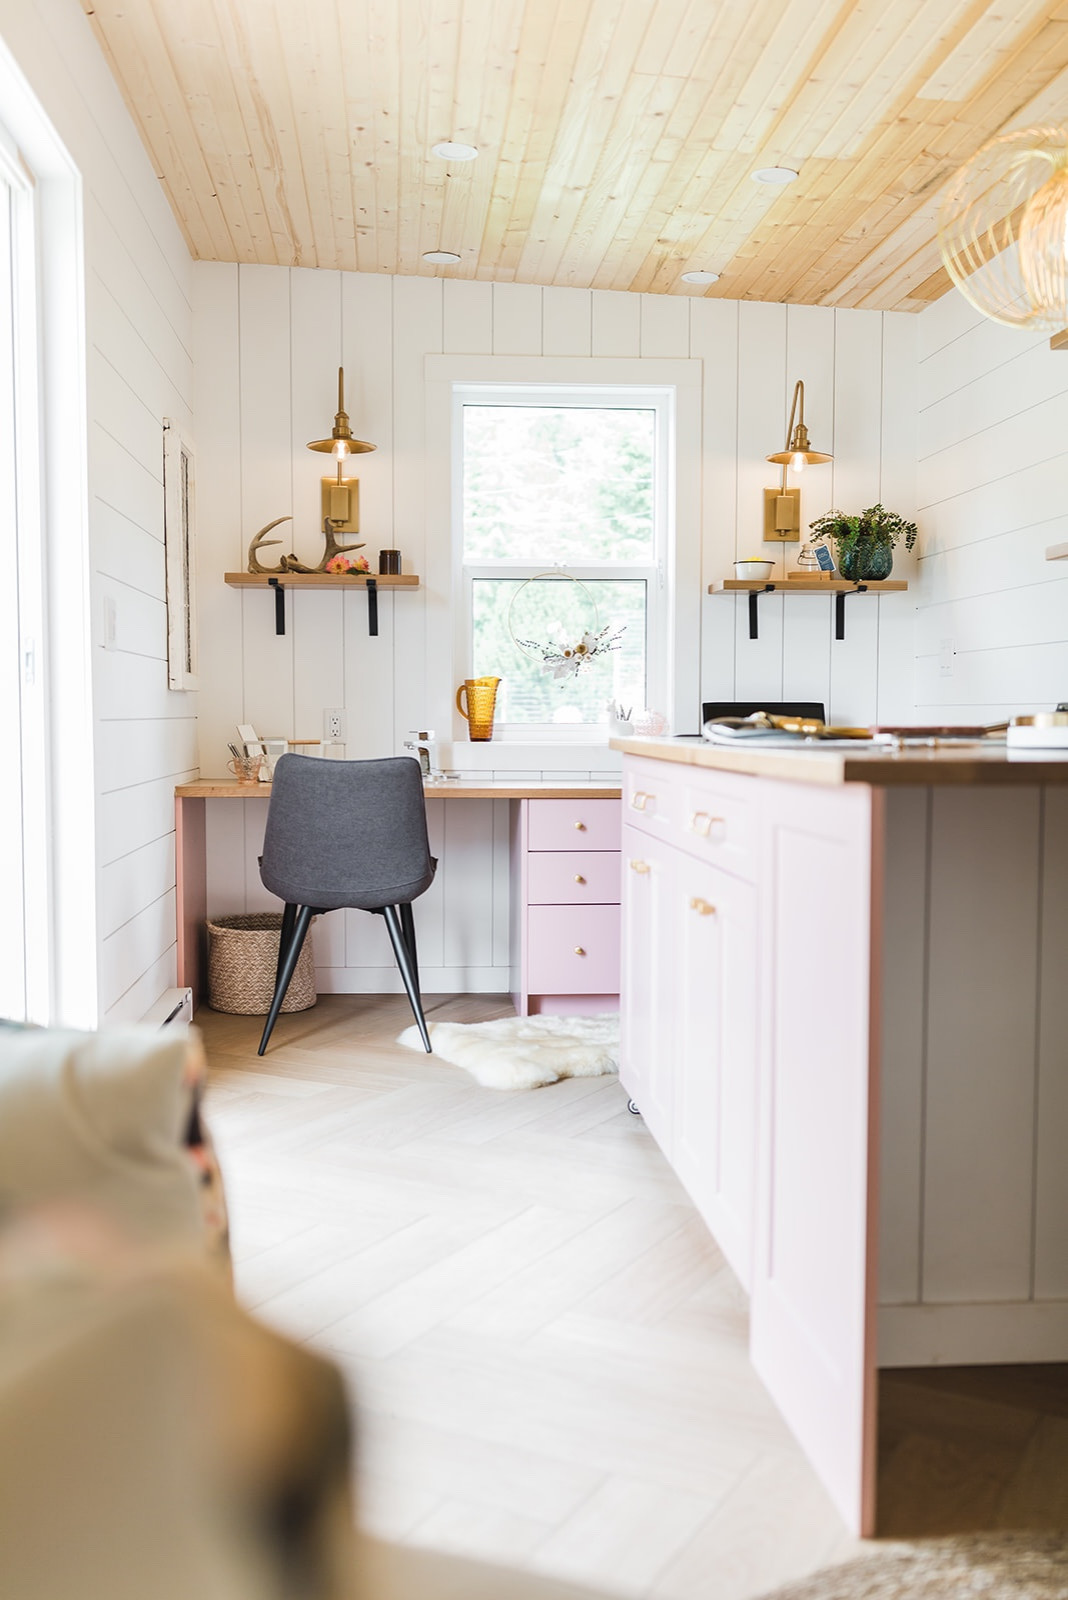 Office & Craft room Dream Space